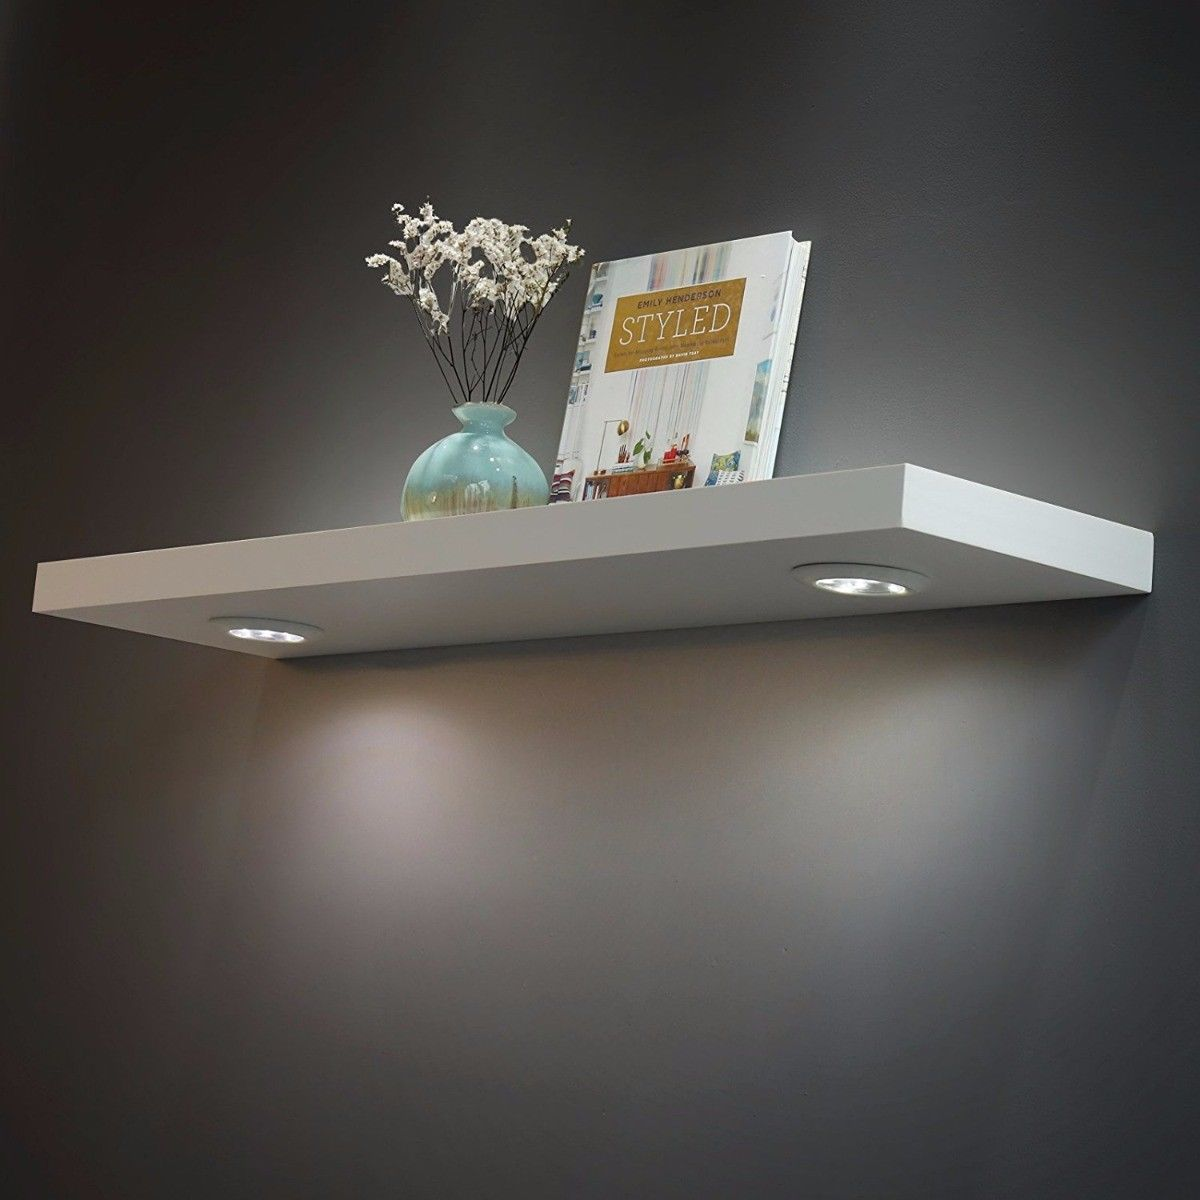 welland floating wall shelf with led lights white shelves concrete floor prep for vinyl tile kitchen island cart seating mantel french fixings desk drawers ikea hanging bracket